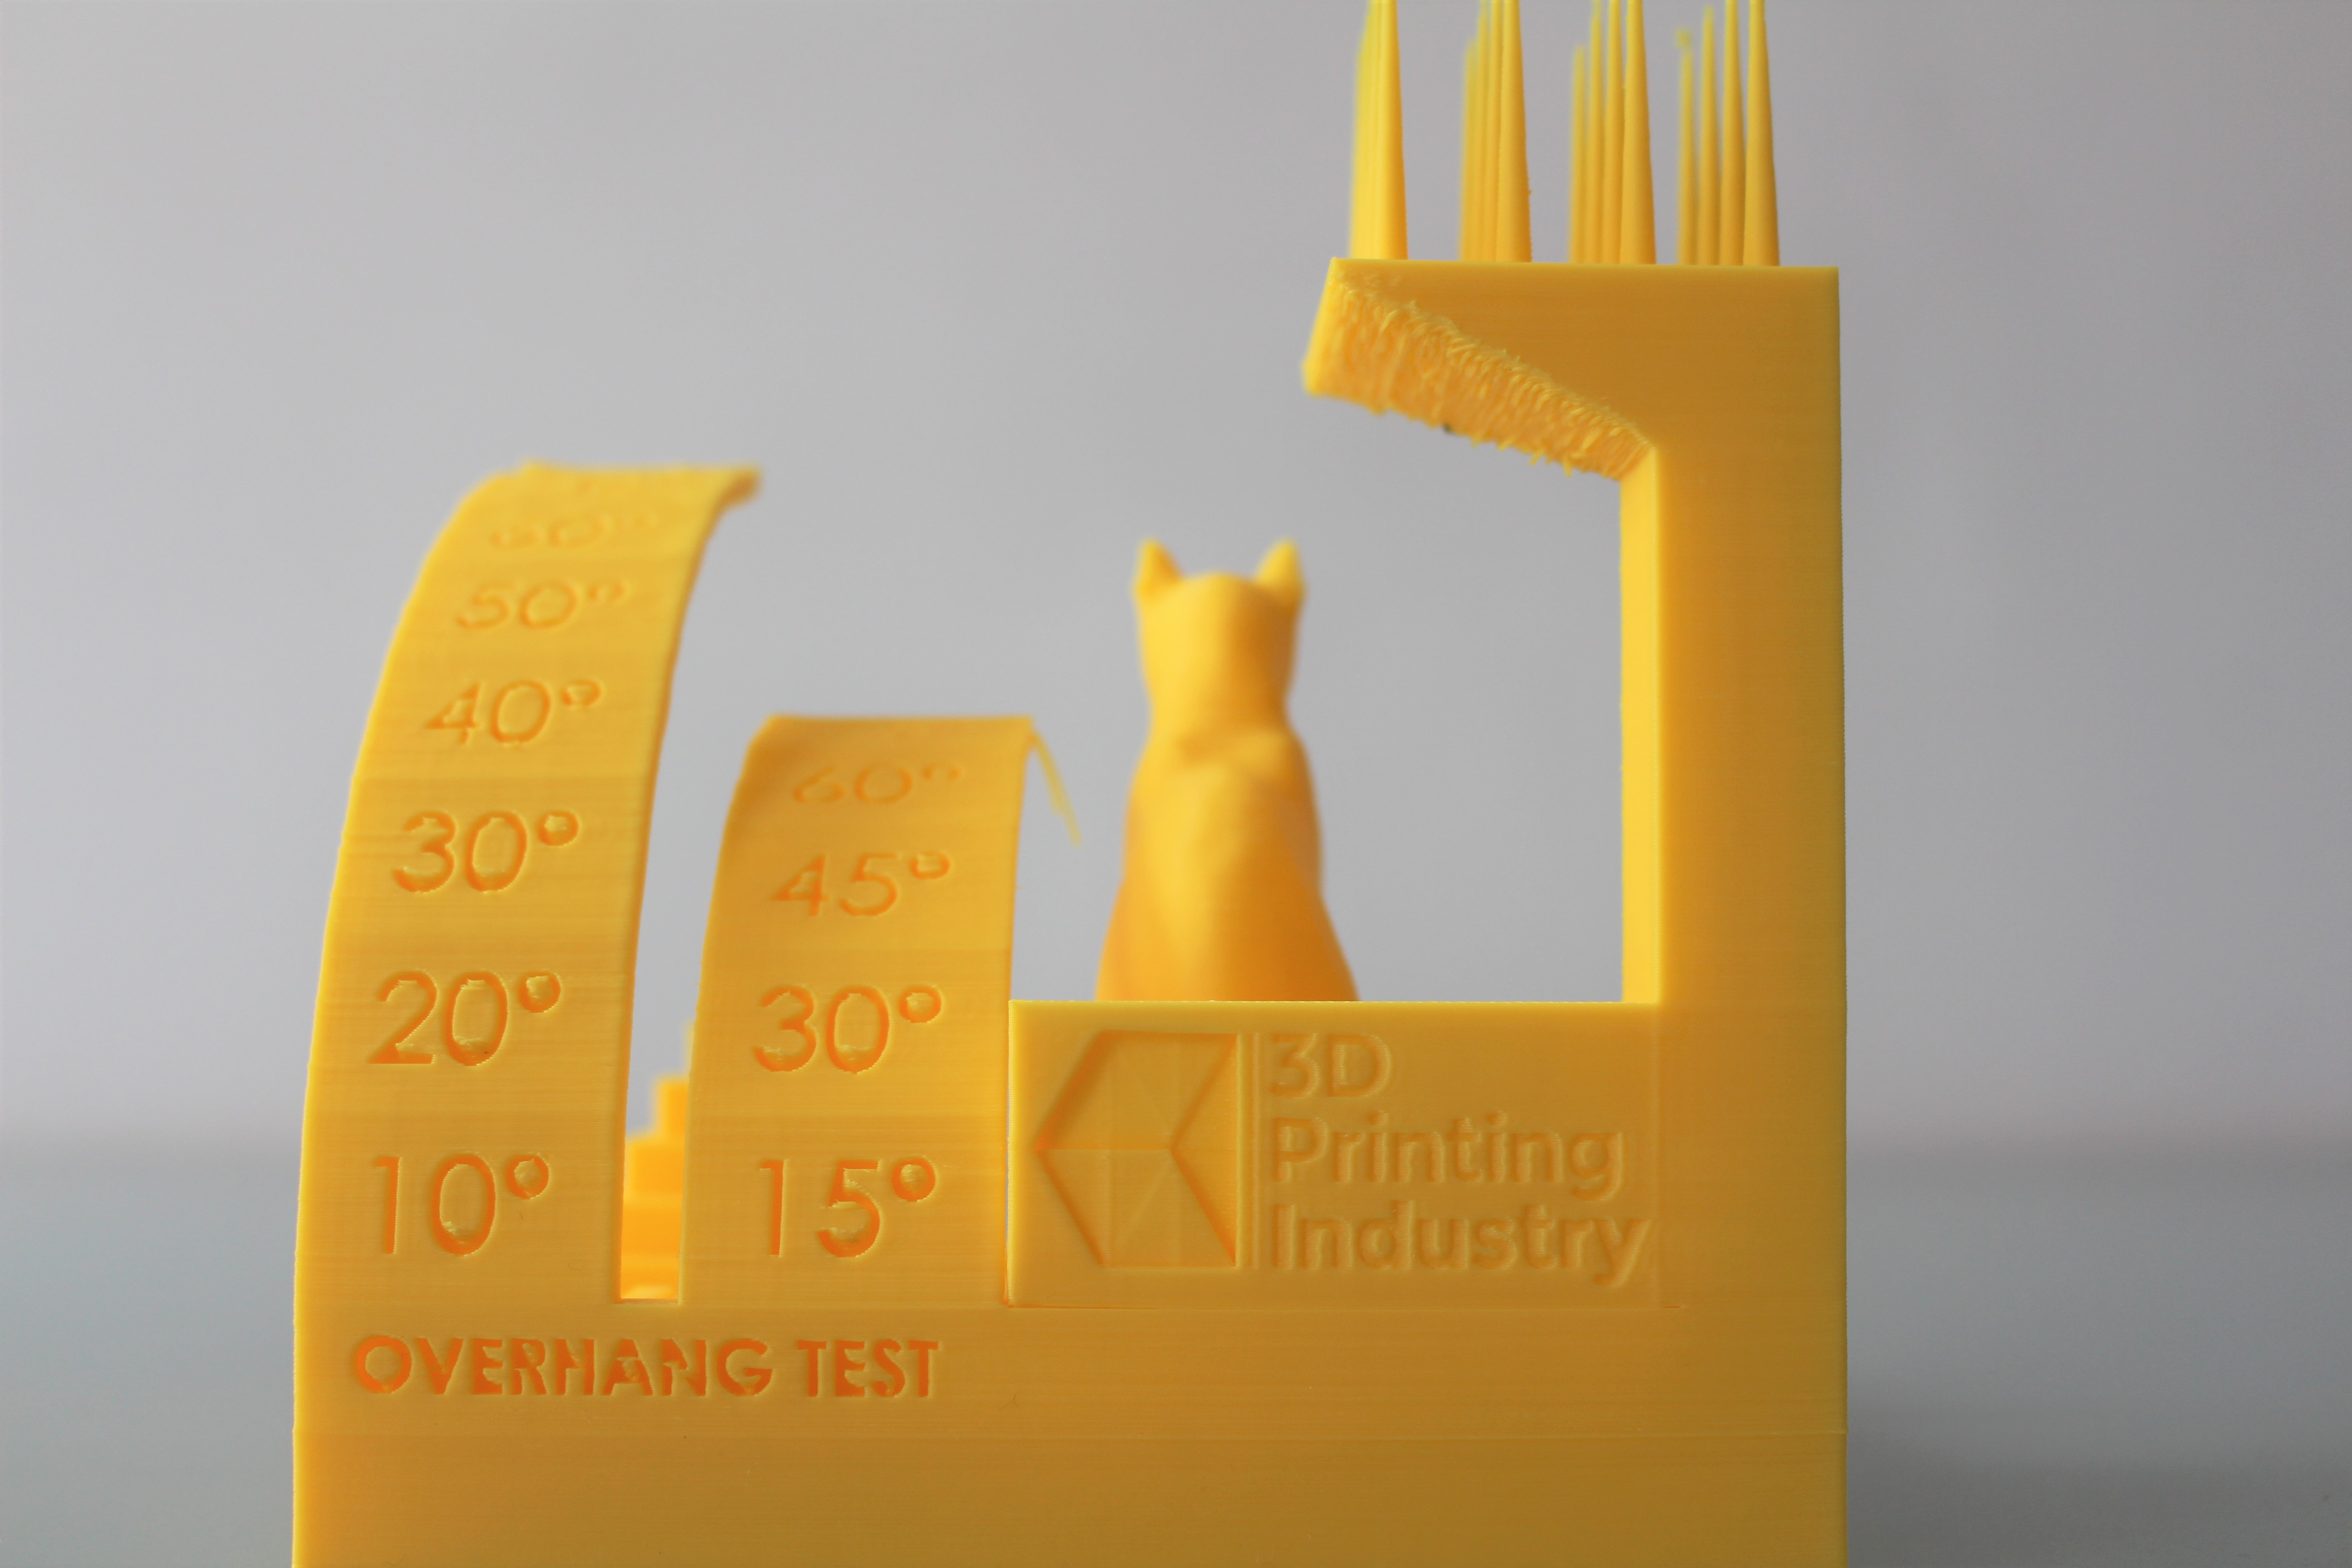 The overhang and retraction test sections. Photo by 3D Printing Industry.